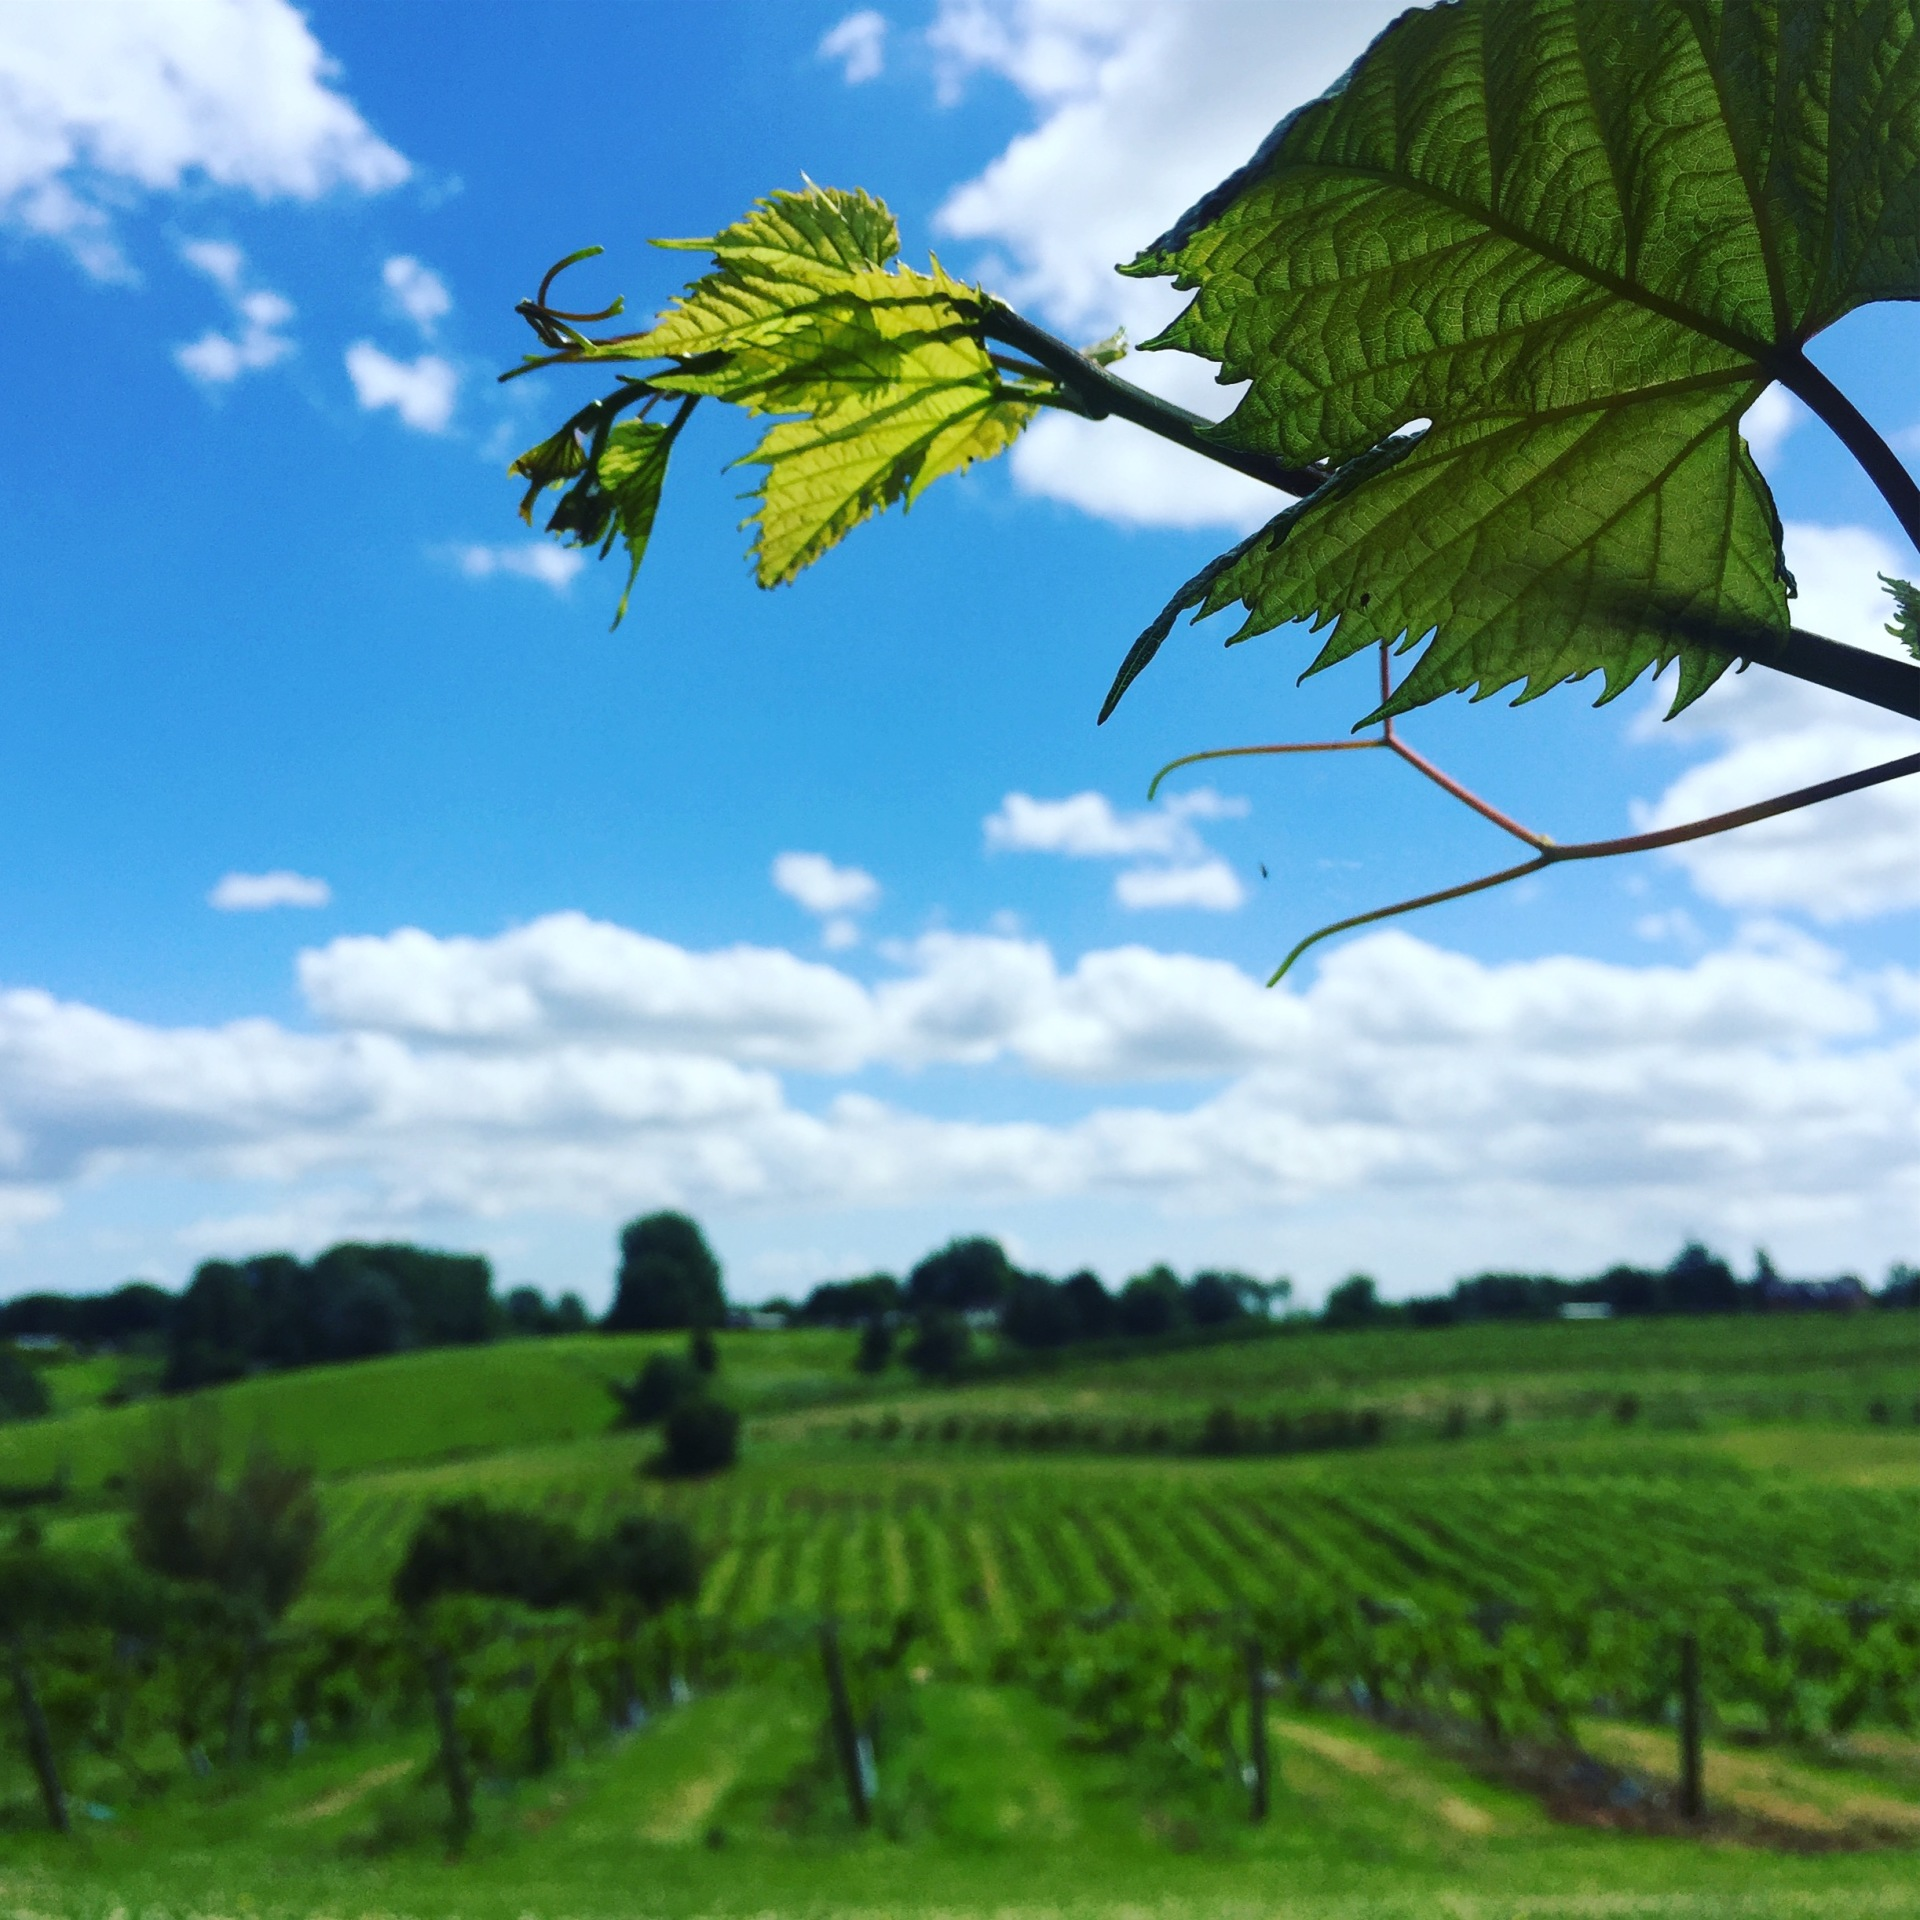 Vista over the vines at 3 Choirs vineyard